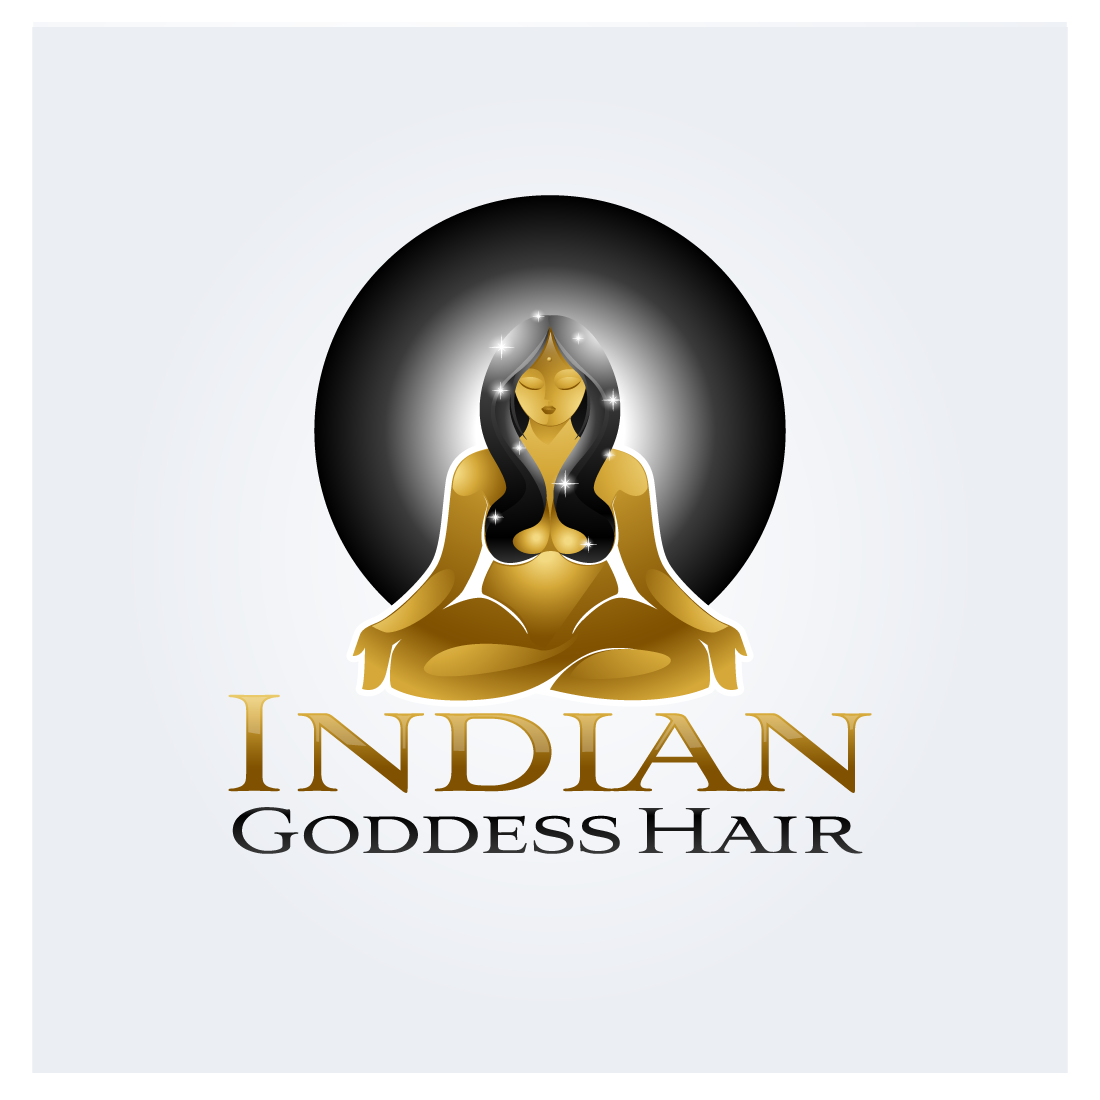 Logo Design by zesthar - Entry No. 16 in the Logo Design Contest Indian Goddess Hair LOGO DESIGN.